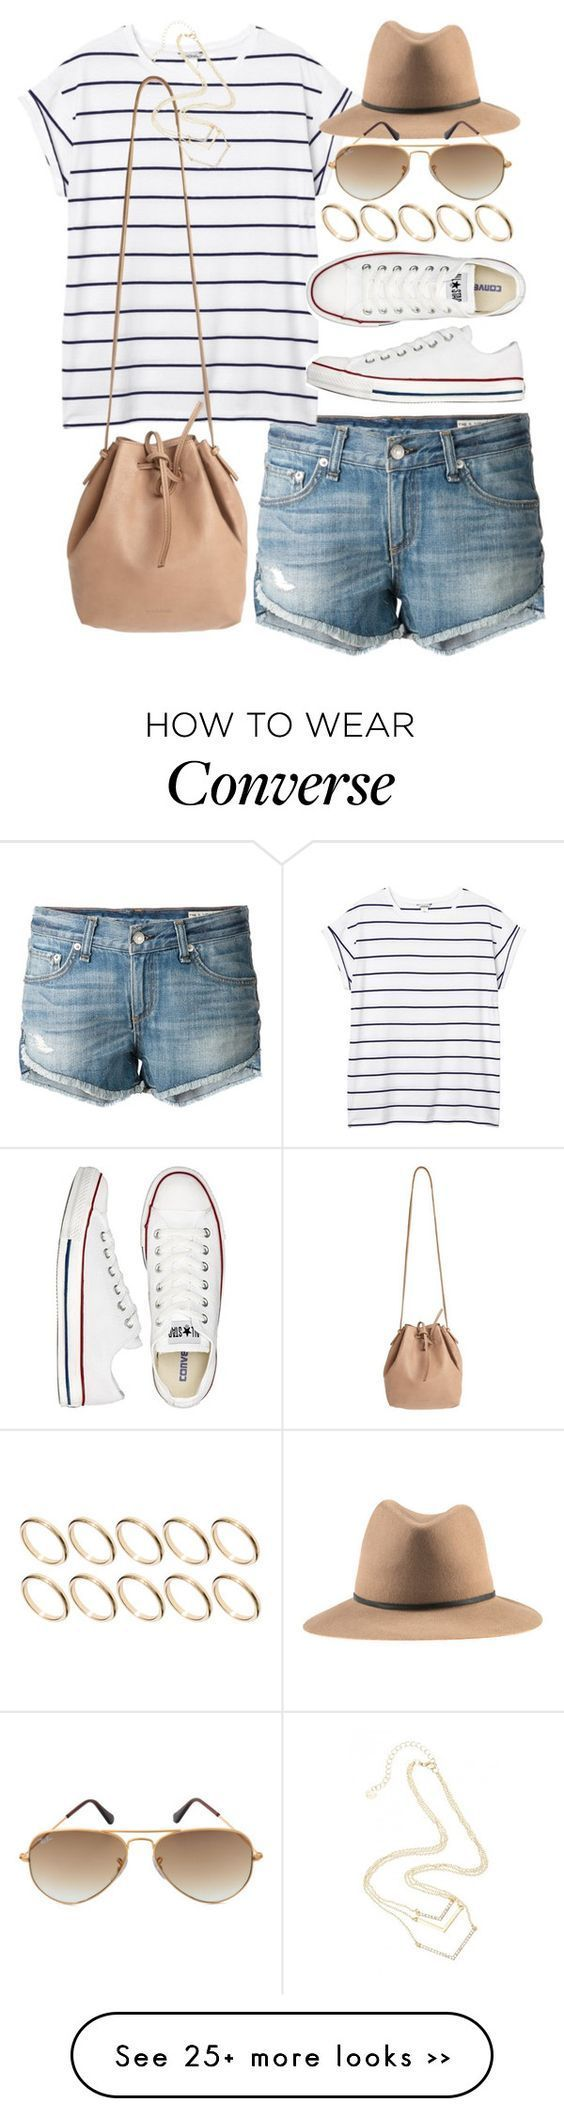 I Love My Converse And I'm A Very Casual Dresser So This Is Like